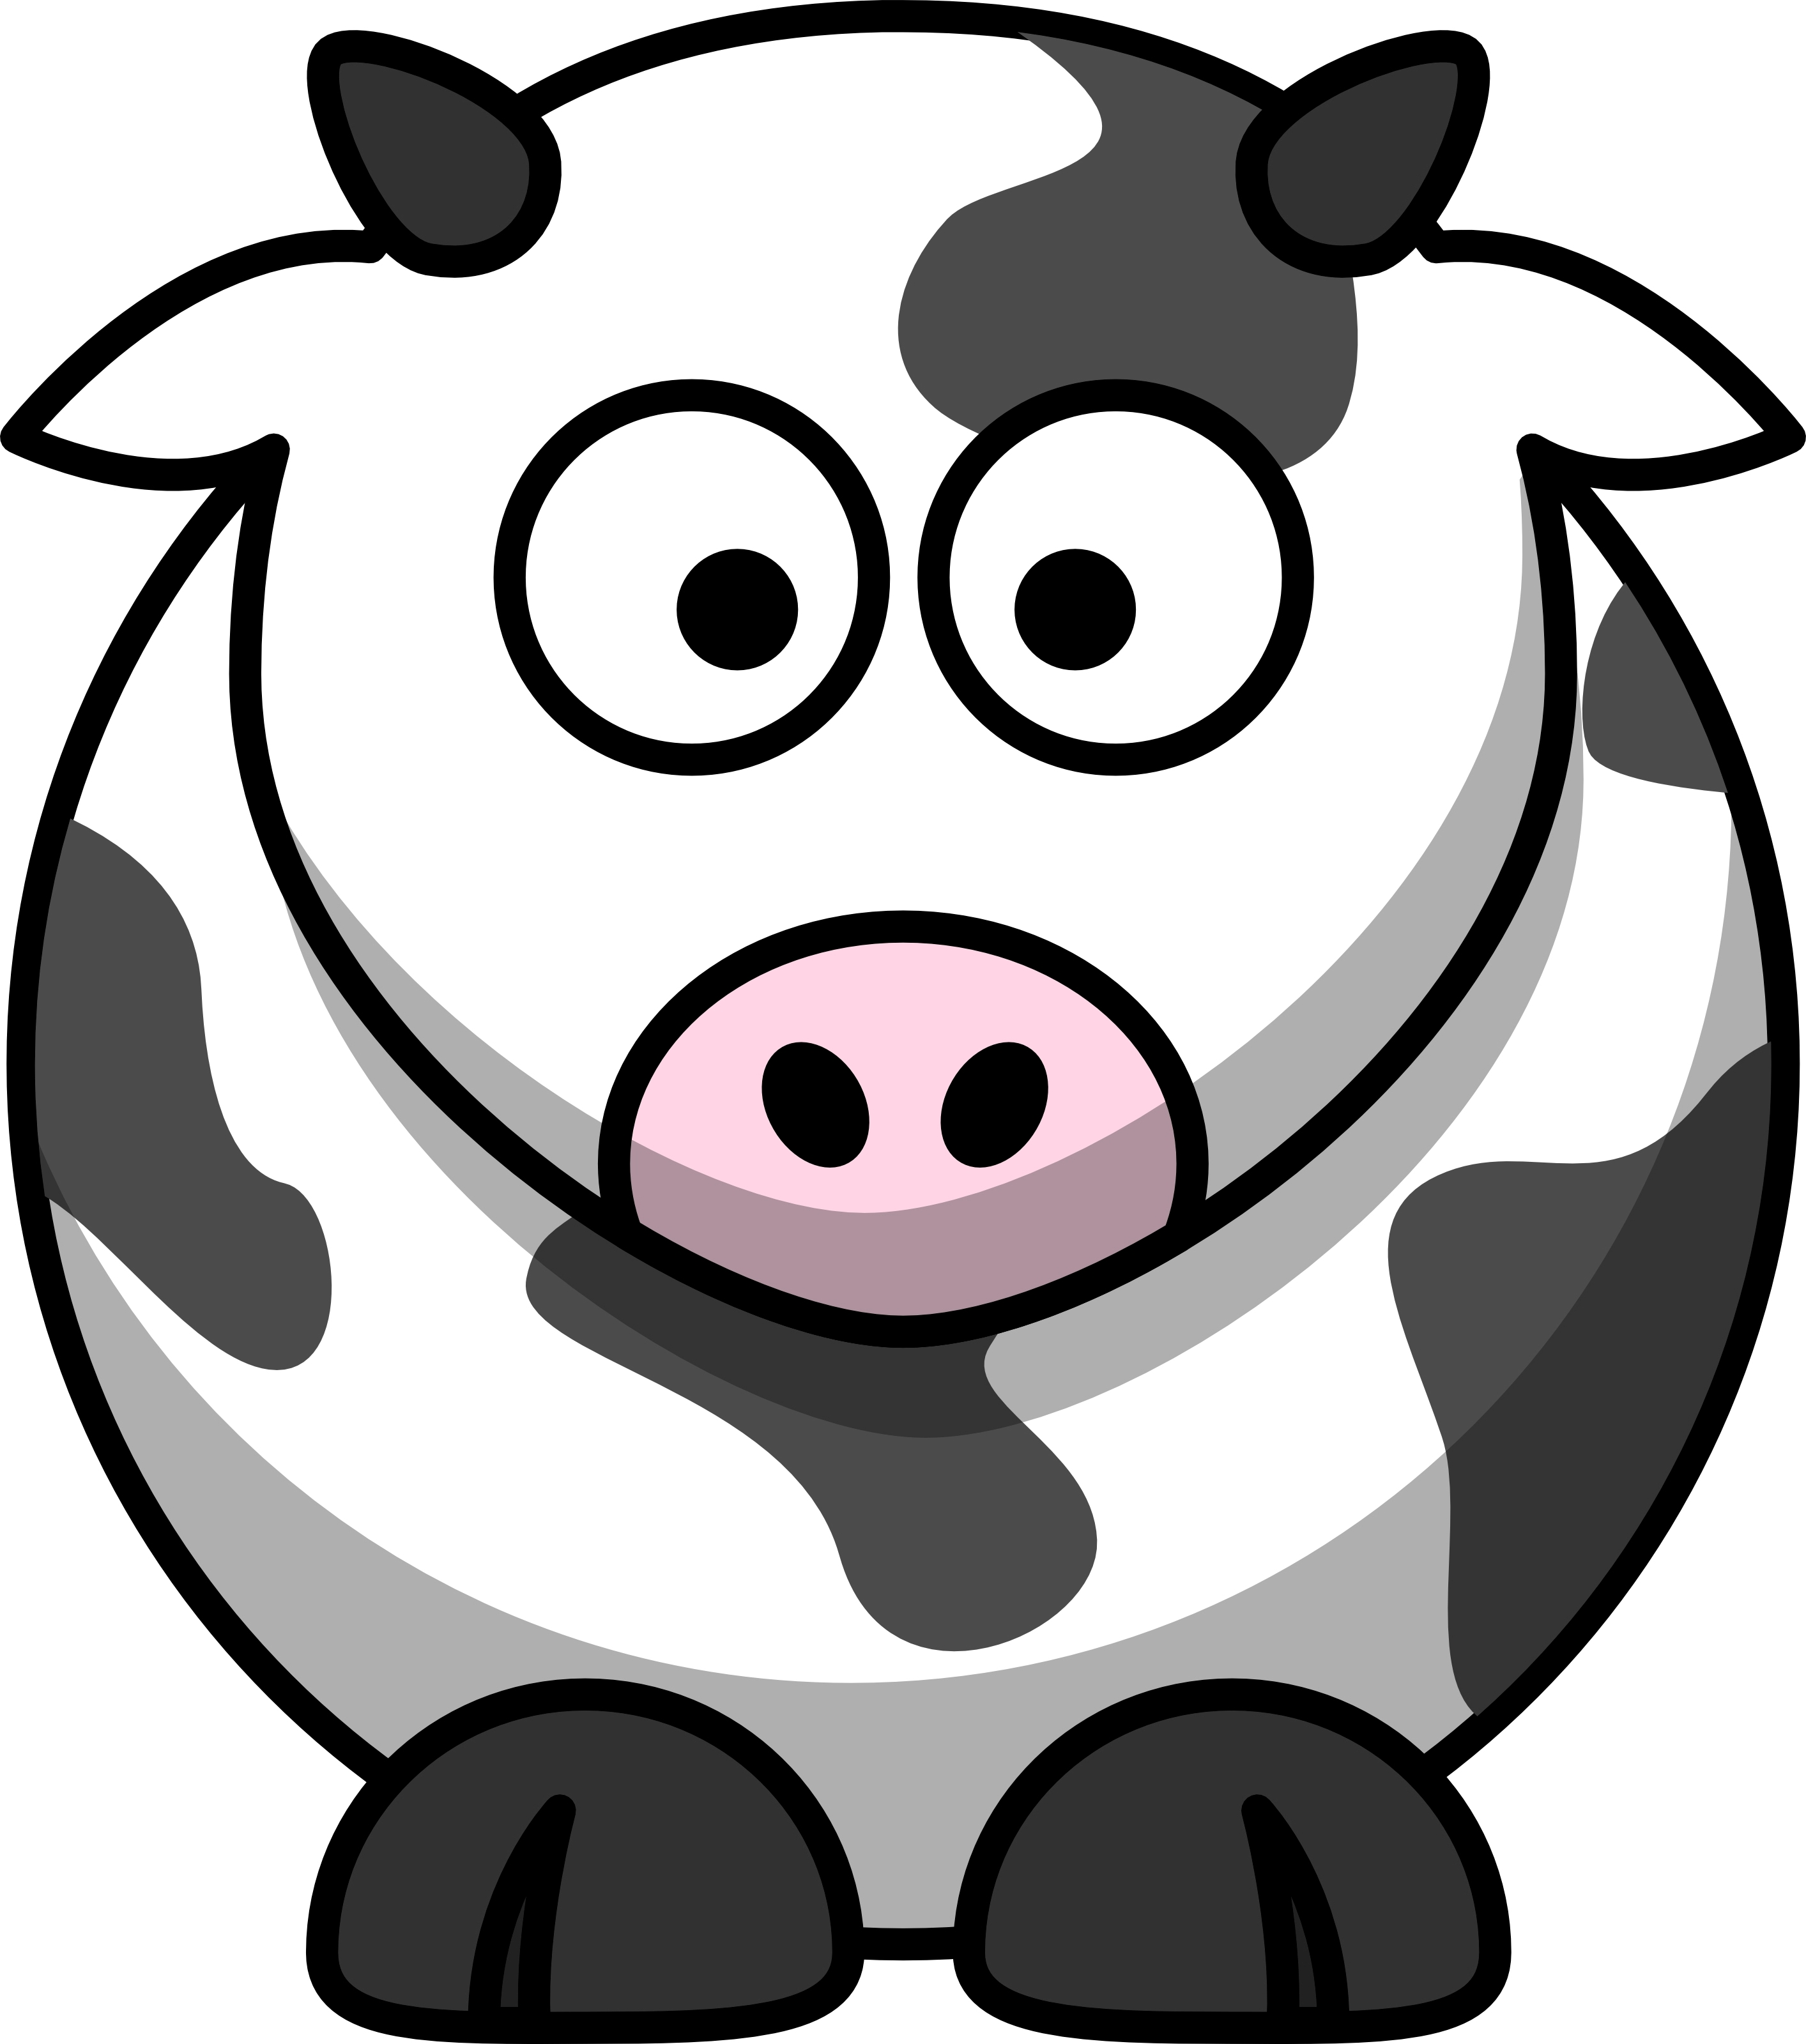 Clipart - Pig, Cow